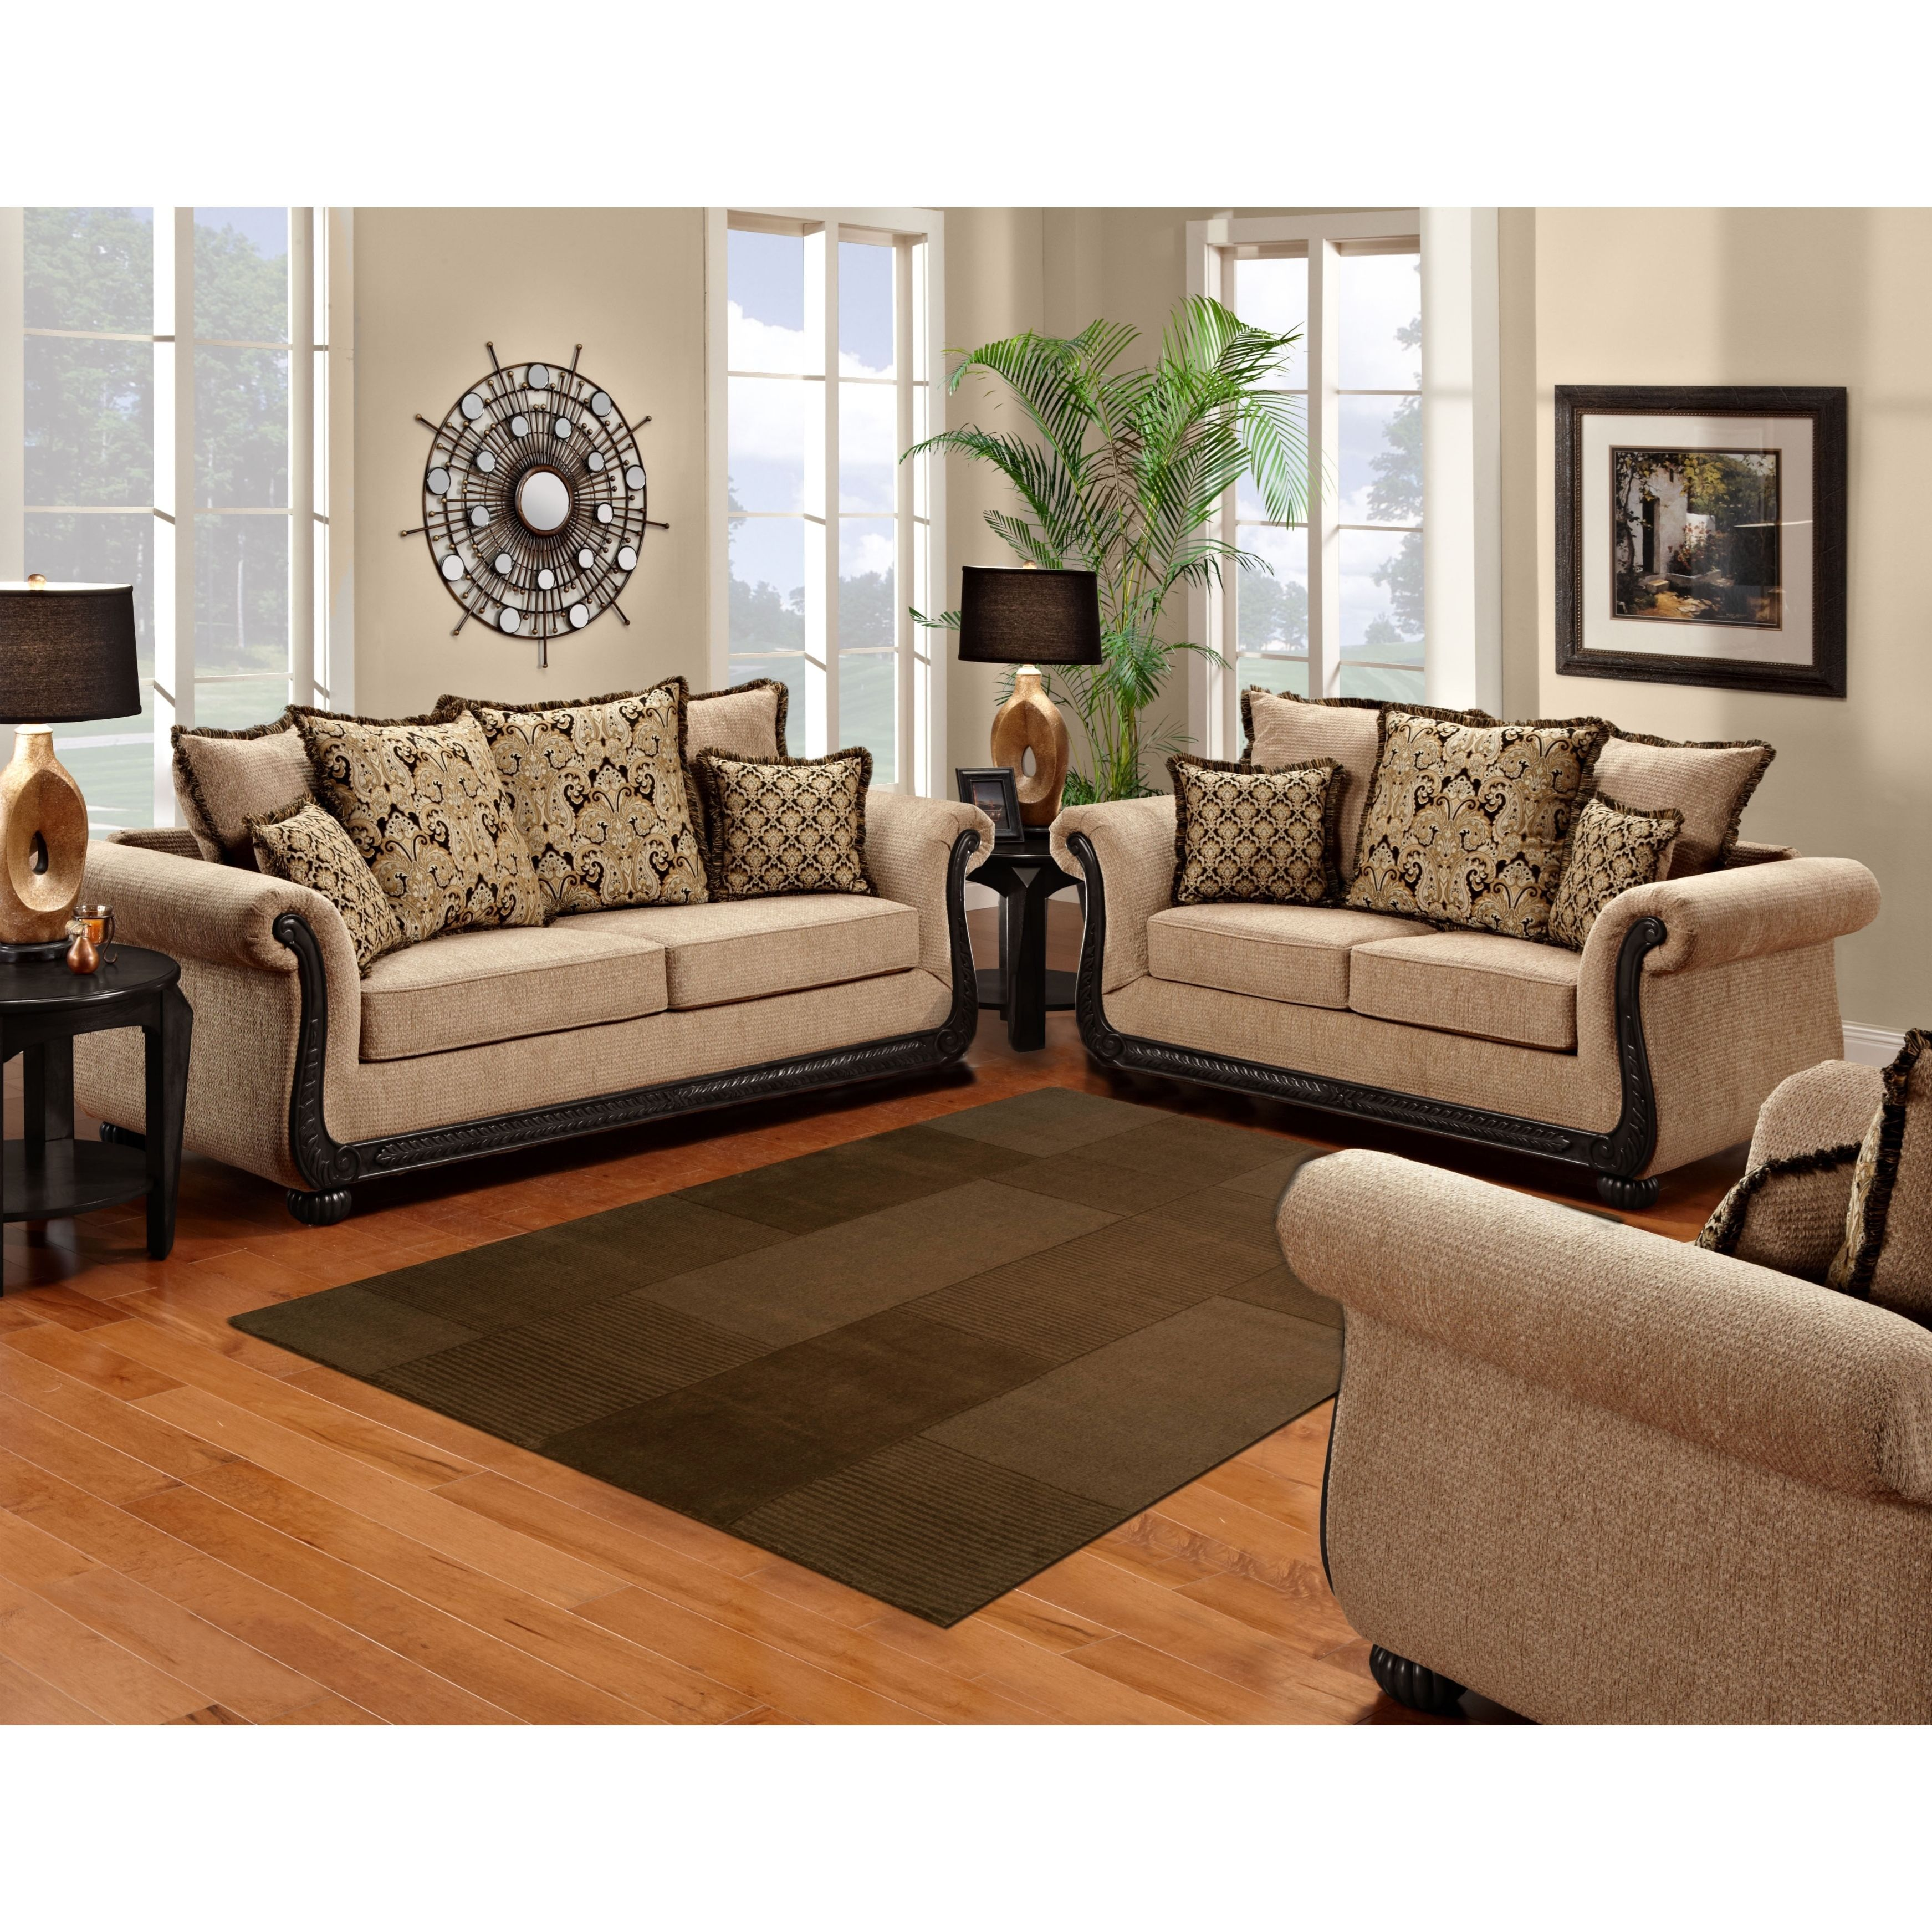 sofa trendz bowen taupe brown microfiber sofa and loveseat set rh pinterest com